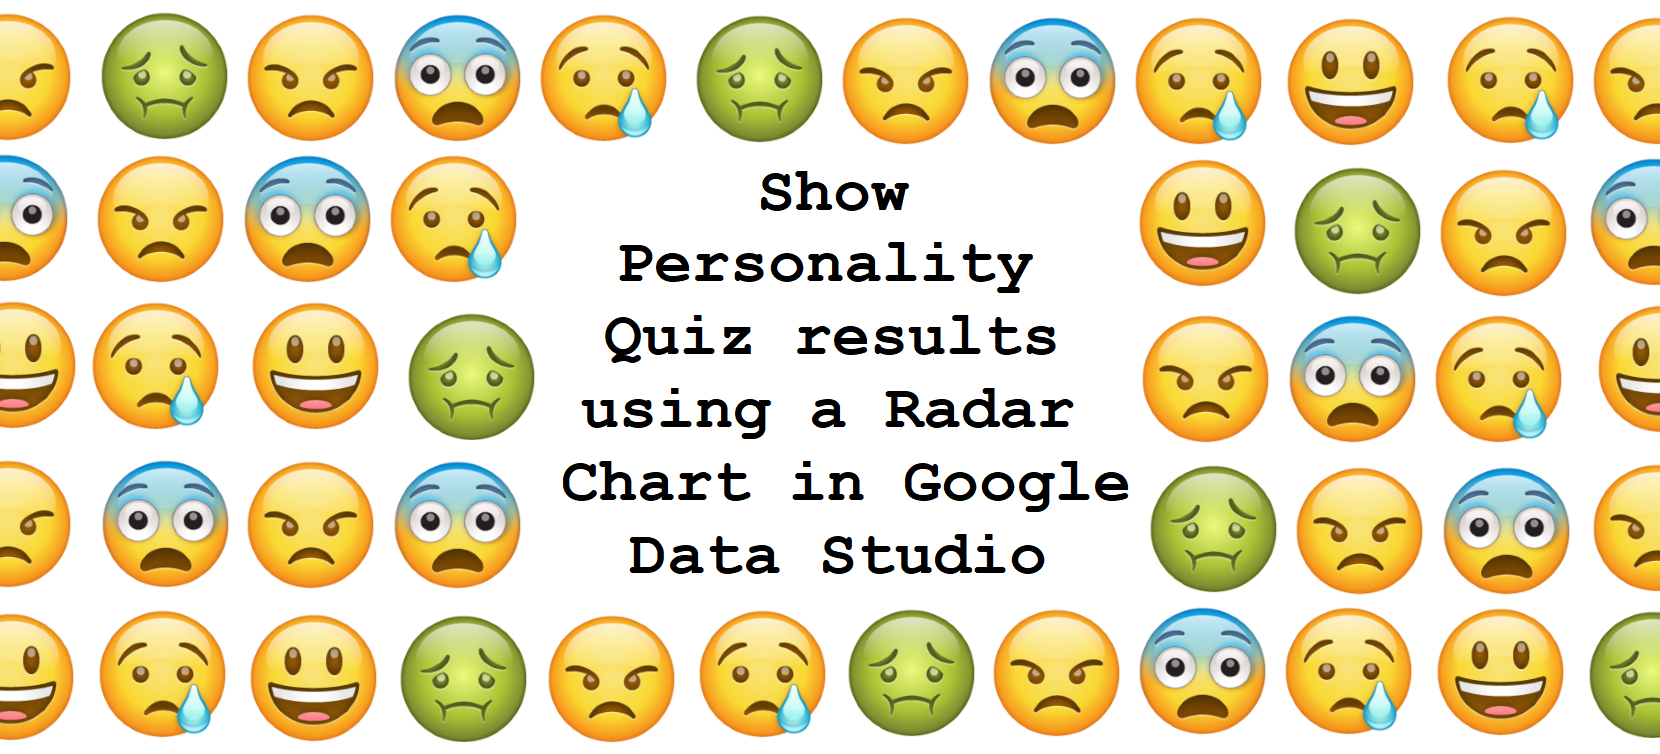 Show Personality Quiz results using a Radar Chart in Google Data Studio